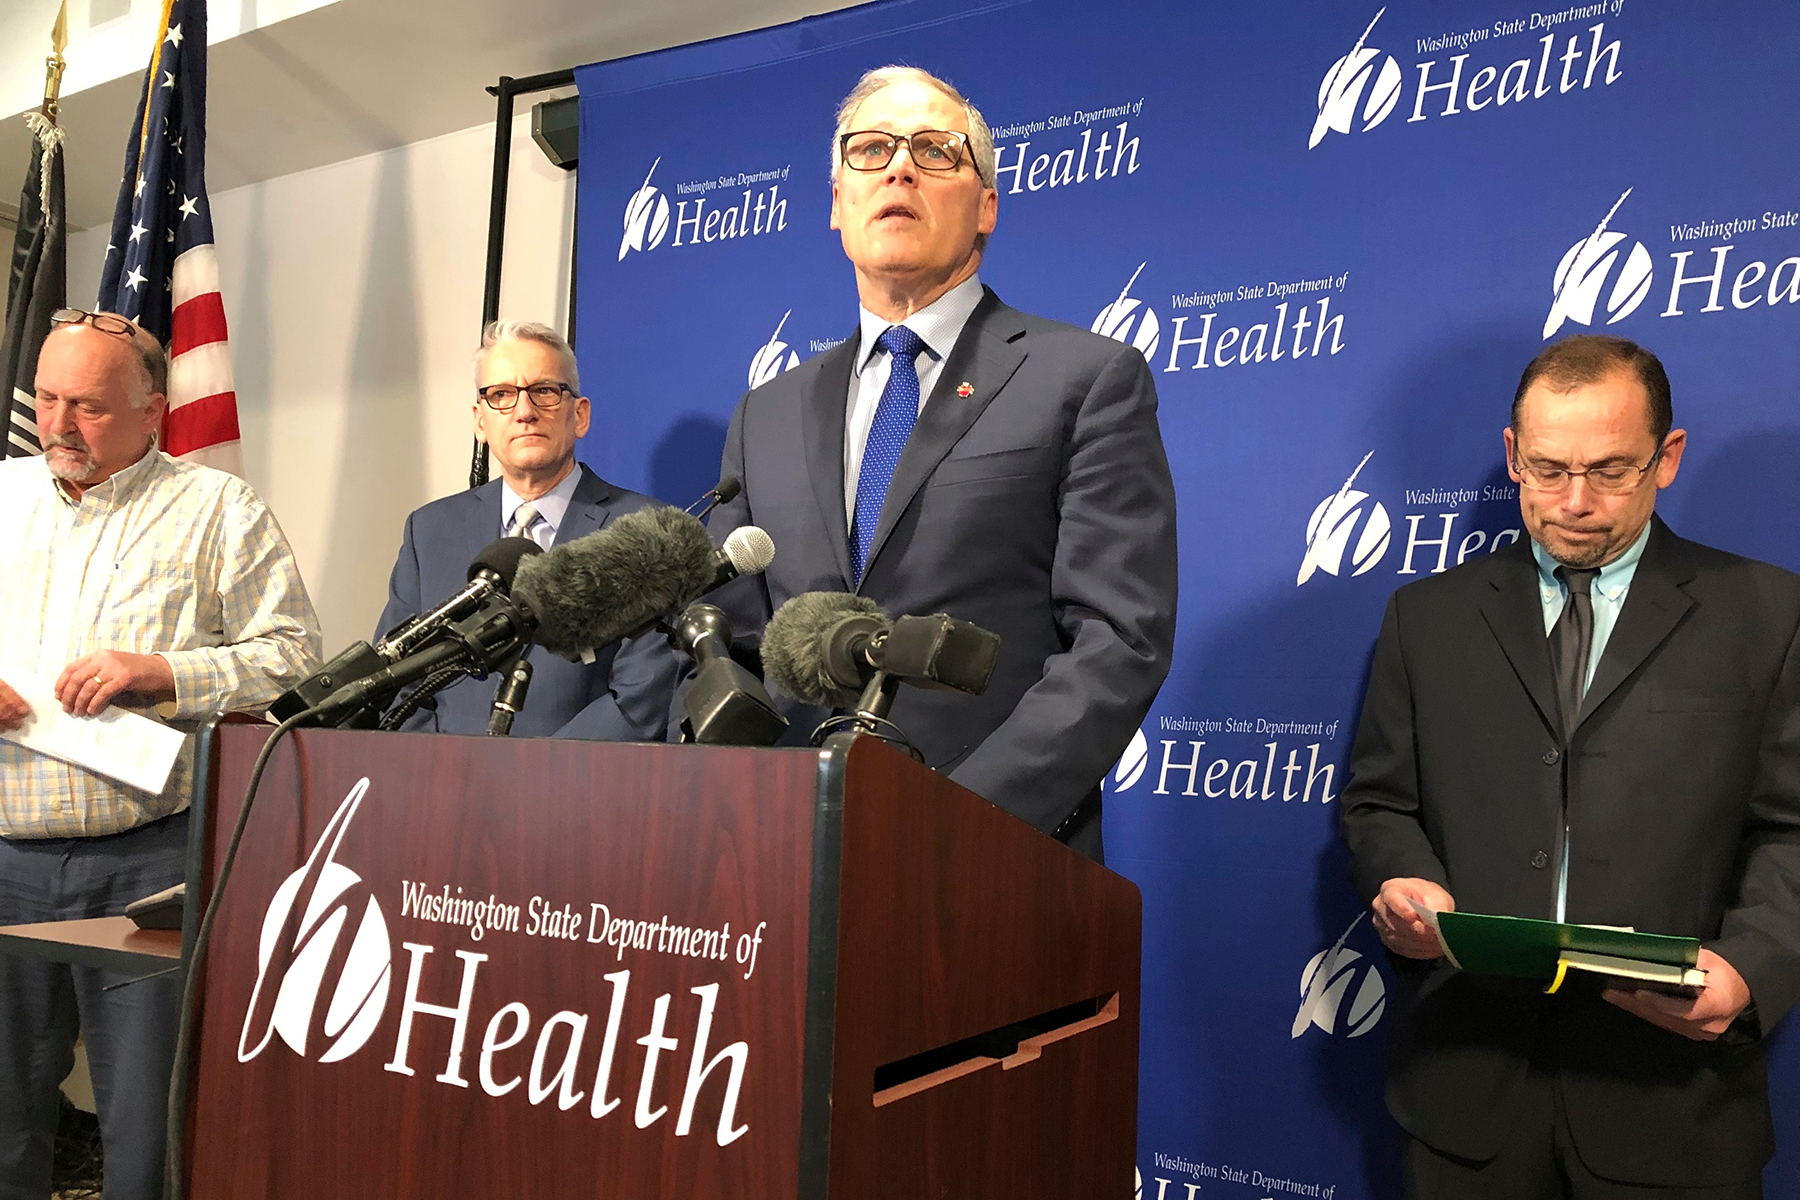 Washington Gov. Jay Inslee, center, speaks, at a news conference in Shoreline, Wash., following the announcement that a man in Washington state is the first known person in the United States to catch a new type of coronavirus that officials believe originated in China. The man who caught the virus is a Washington state resident who returned last week from China and is currently hospitalized near SeattleChina Outbreak, Shoreline, USA - 21 Jan 2020